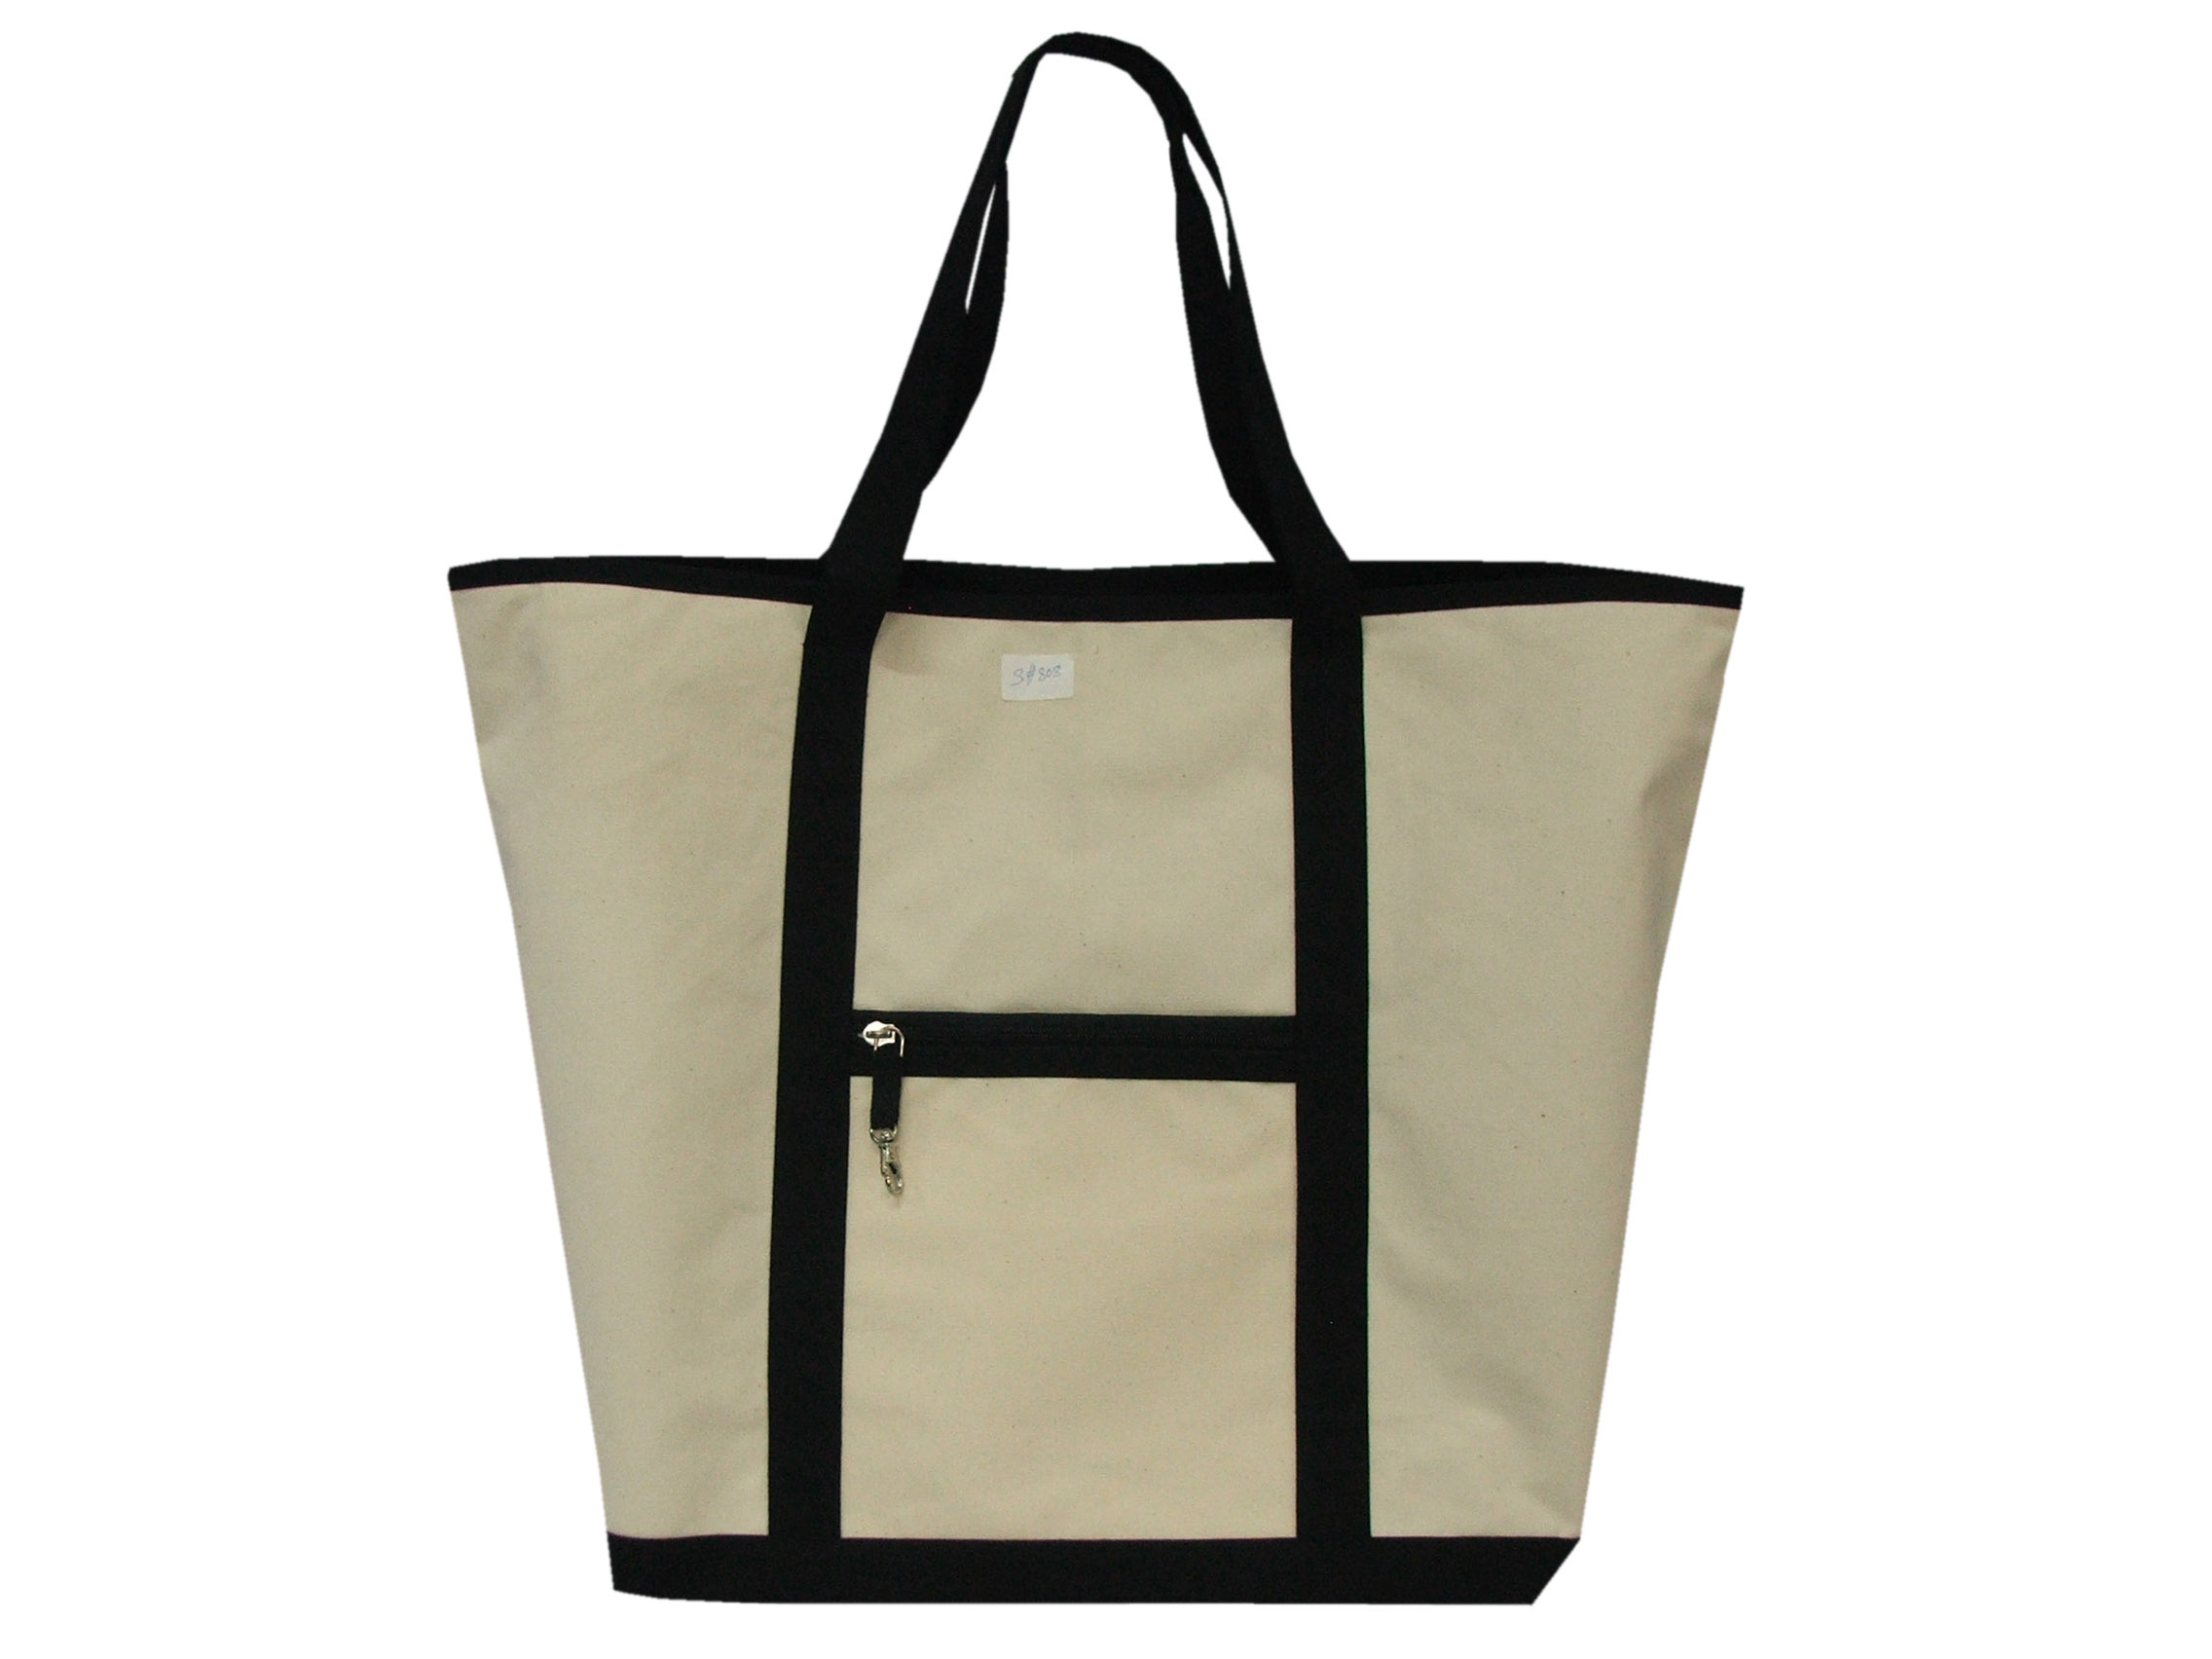 Deluxe Organic Cotton Tote Bag